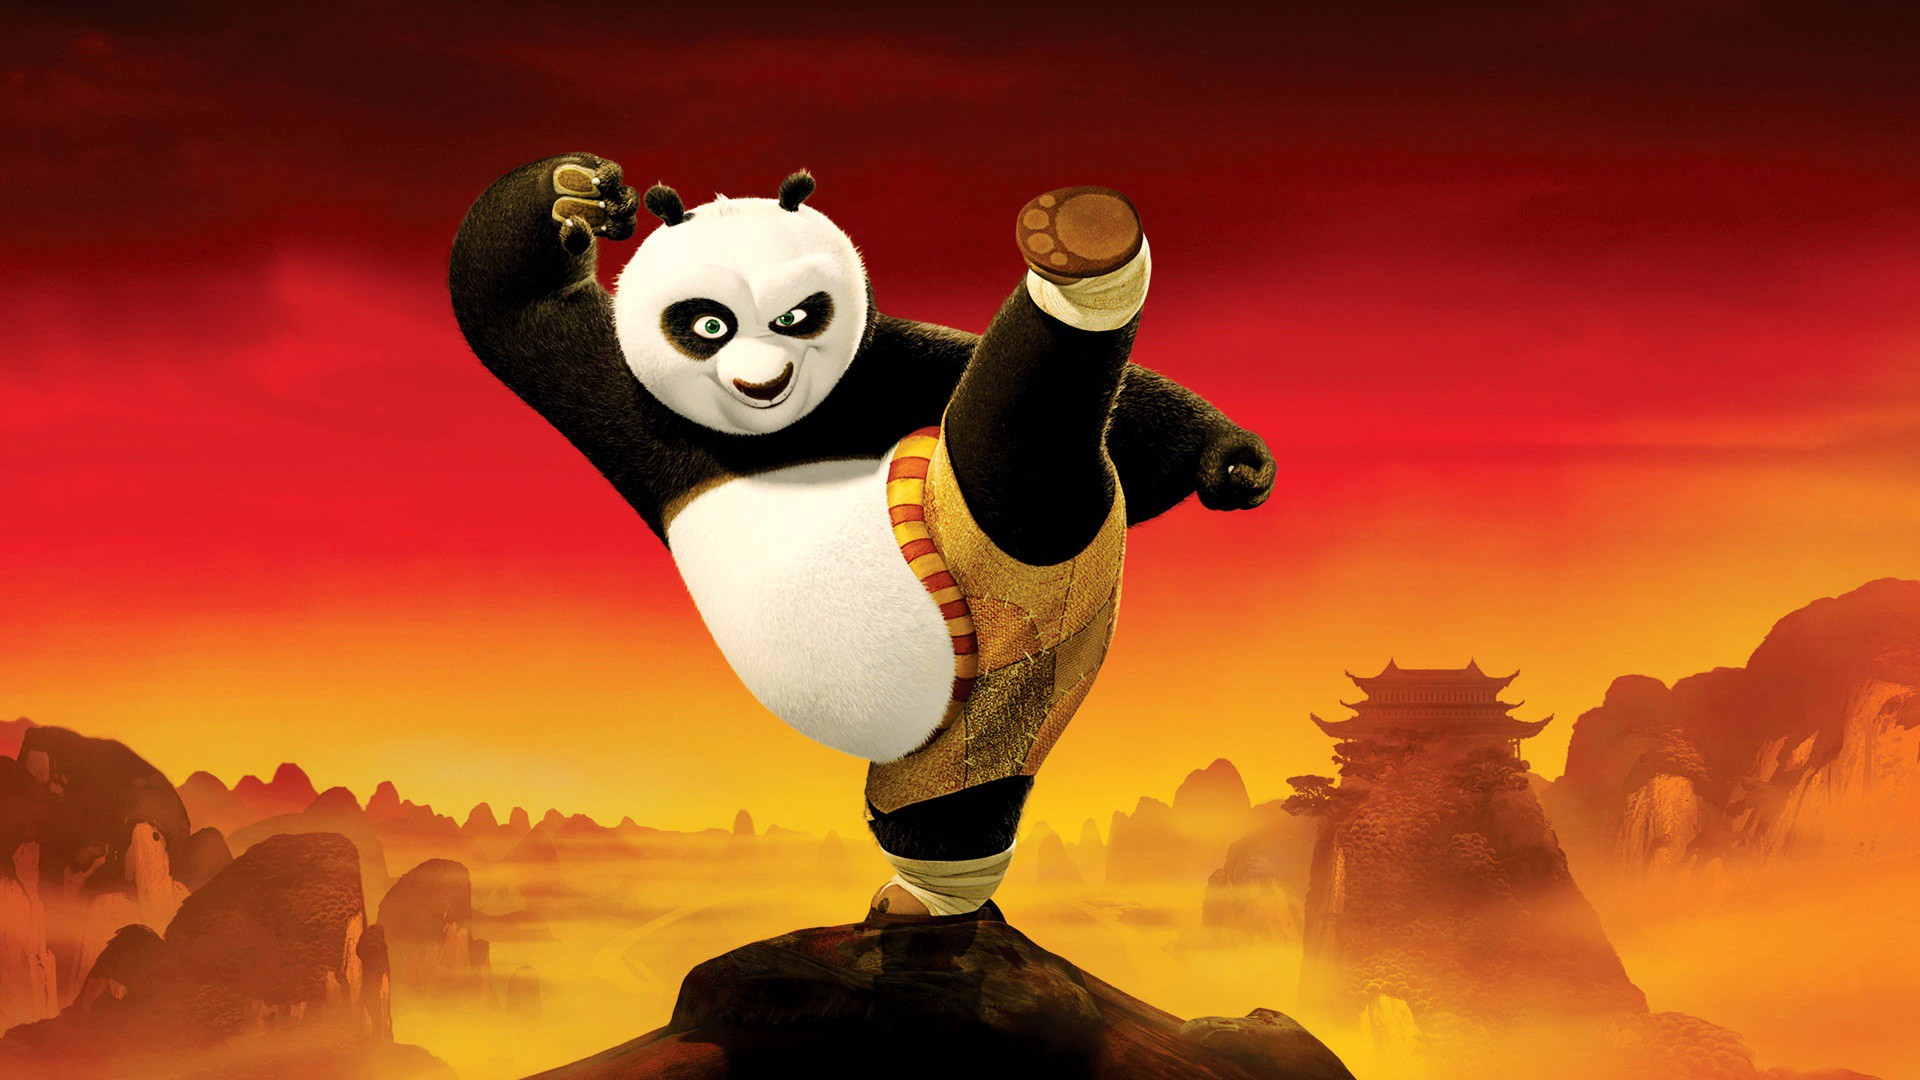 The Panda Fulfills His Destiny An Overanalysis Of The Kung Fu Panda By Brenna Siver Cosgrrrl